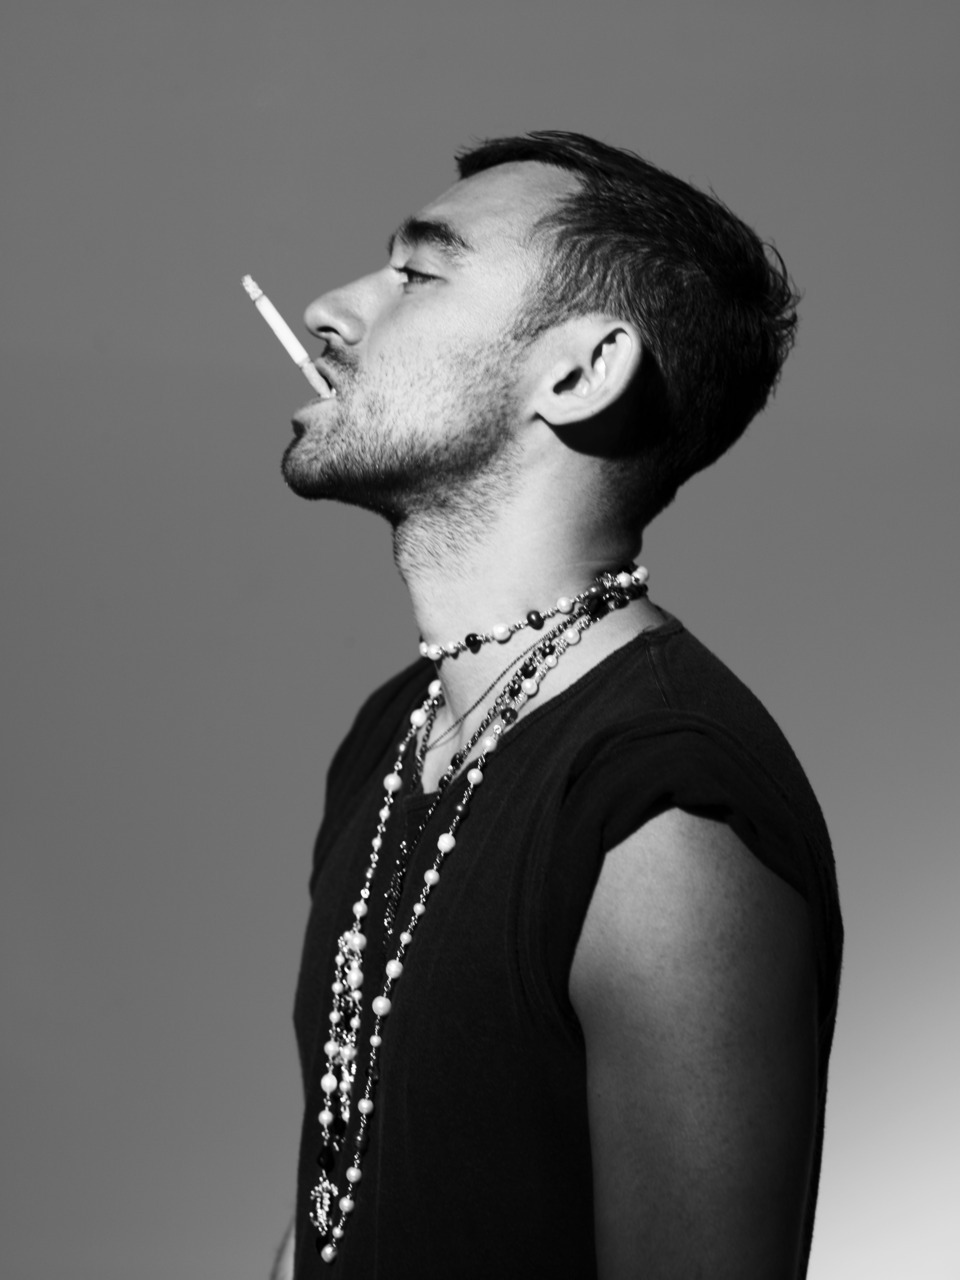 """Formichetti is just weird.. kind of like Spaghetti!""—Nicola Formichetti From Milk Made's exclusive interview with one of the most influential (badass) creative directors of our time."